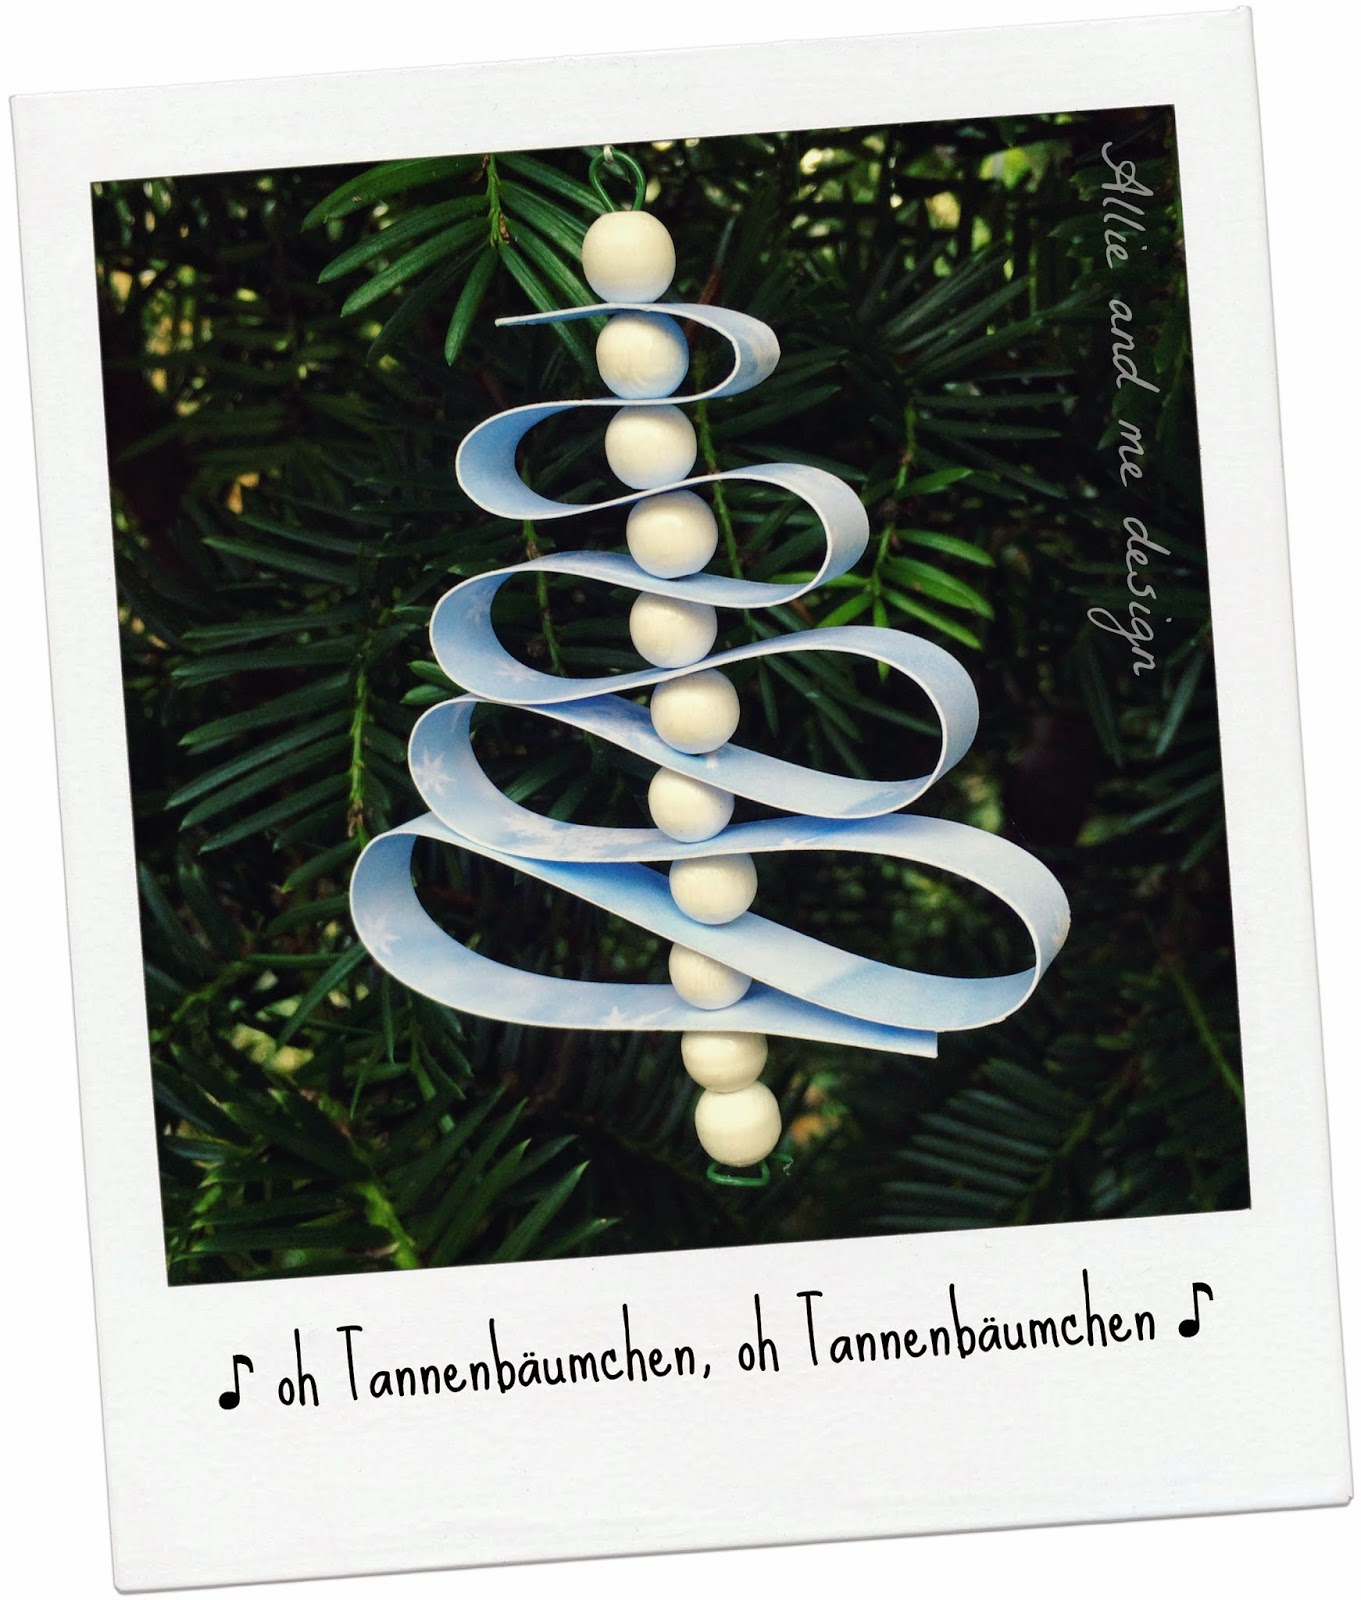 http://allie-and-me-design.blogspot.de/2014/11/oh-tannenbaumchen.html